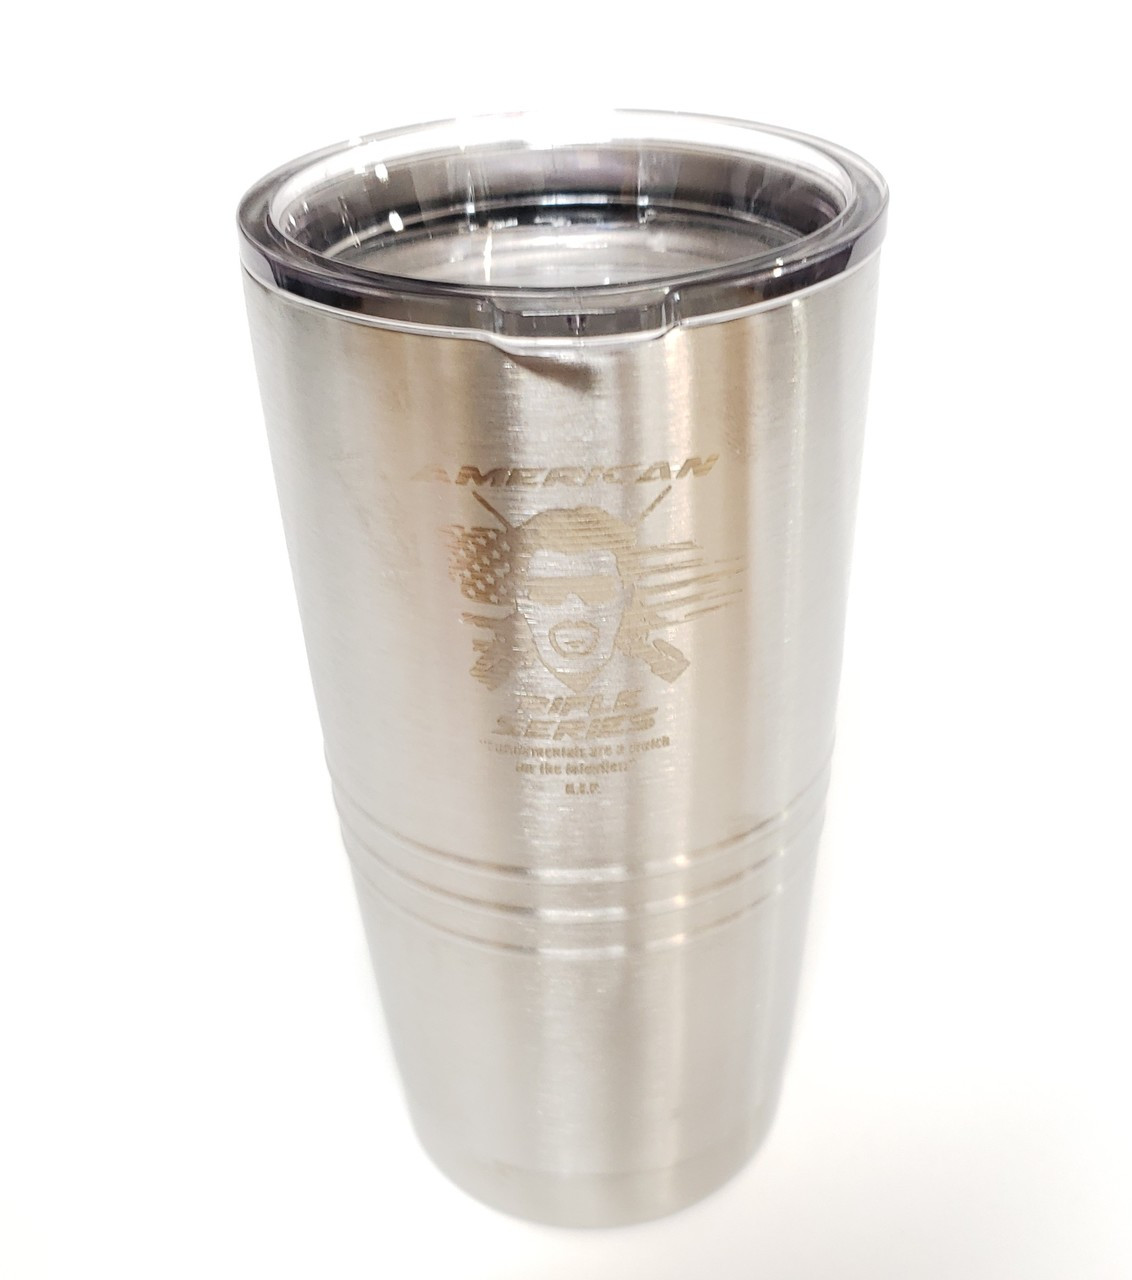 American Rifle Series Tumbler